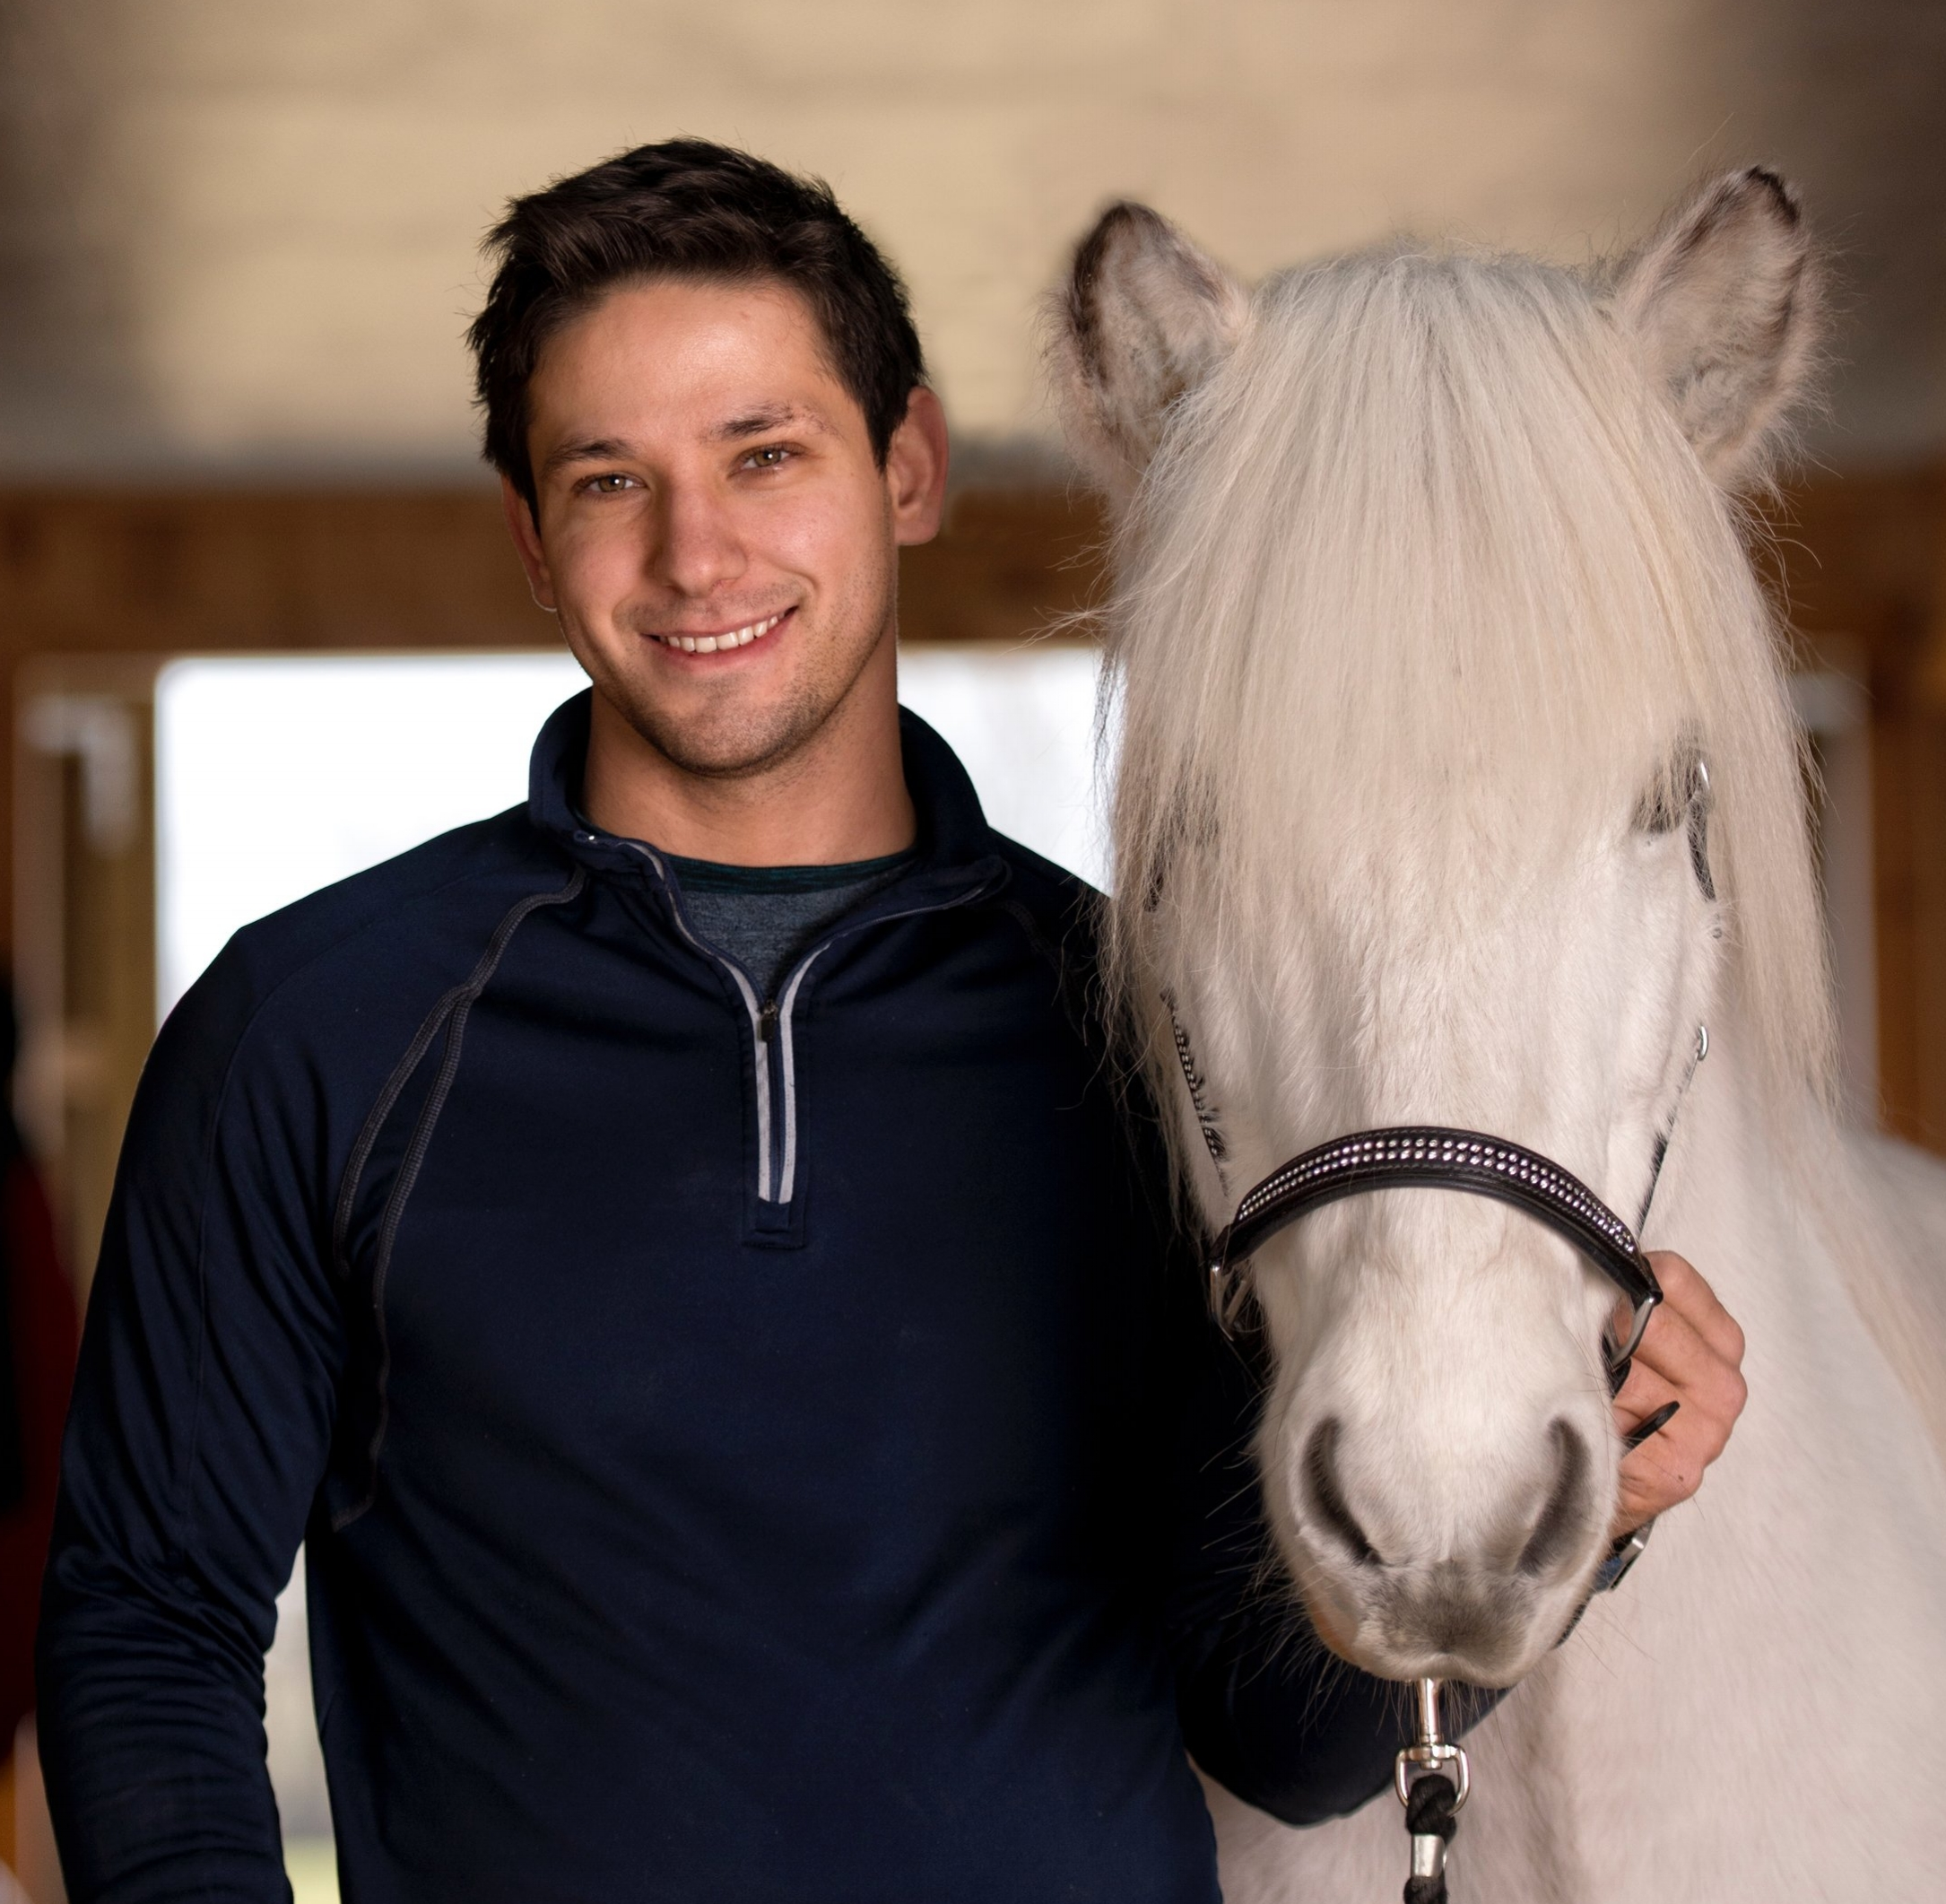 Terral Hill has been riding horses since he was a year old, sitting in the saddle in front of his mother. He has handled and cared for horses all his life, and started his formal education training horses with Terry Wilson, a Parelli certified natural horsemanship trainer and colt starter. Terral learned from the ground up with Terry, starting horses naturally,on the ground and progressing to the saddle.   Terral worked for Gudmar Petursson, learning the special techniques and methods specific to the Icelandic horse. He started young horses for Gudmar, and started learning and training the gaits of the Icelandic horse. Terral also worked in Iceland starting young horses, and is well known both in the United States and Iceland for his natural horsemanship techniques starting horses and gait training. Terral began his career in Iceland working at one of the biggest breeding farms Fét for Anton Páll Nielson. At Fet, Terral passed a test judged by Eyjolfur Ísólfsson, Þorvaldur Árni, and Anton Páll Nielson qualifying him as a young horse trainer of Icelandic horses.Later he spent a year working for two of the most respected competitive riders and trainers in Iceland Hulda Gustafsdóttir and Hinrik Bragason.  Throughout his time working for Gudmar and in Iceland Terral also mastered Icelandic horse farrier skills and is recognized for his abilities to create a healthy balanced foot while encourage optimal performance.  Since his return to the states Terral has been the highest-ranked rider in Five Gait (2015 and 2016) in the U.S. Icelandic Congress National Ranking and has qualified multiple times for the U.S. Icelandic Horse World Championship Team. In addition he is one of the main performers in the fast-paced and fiery Knights of Iceland Show Team working in particular training and preparing the fire and sparkler acts. When not traveling and teaching clinics or competing Terral is the primary trainer and instructor alongside Carrie at Taktur.